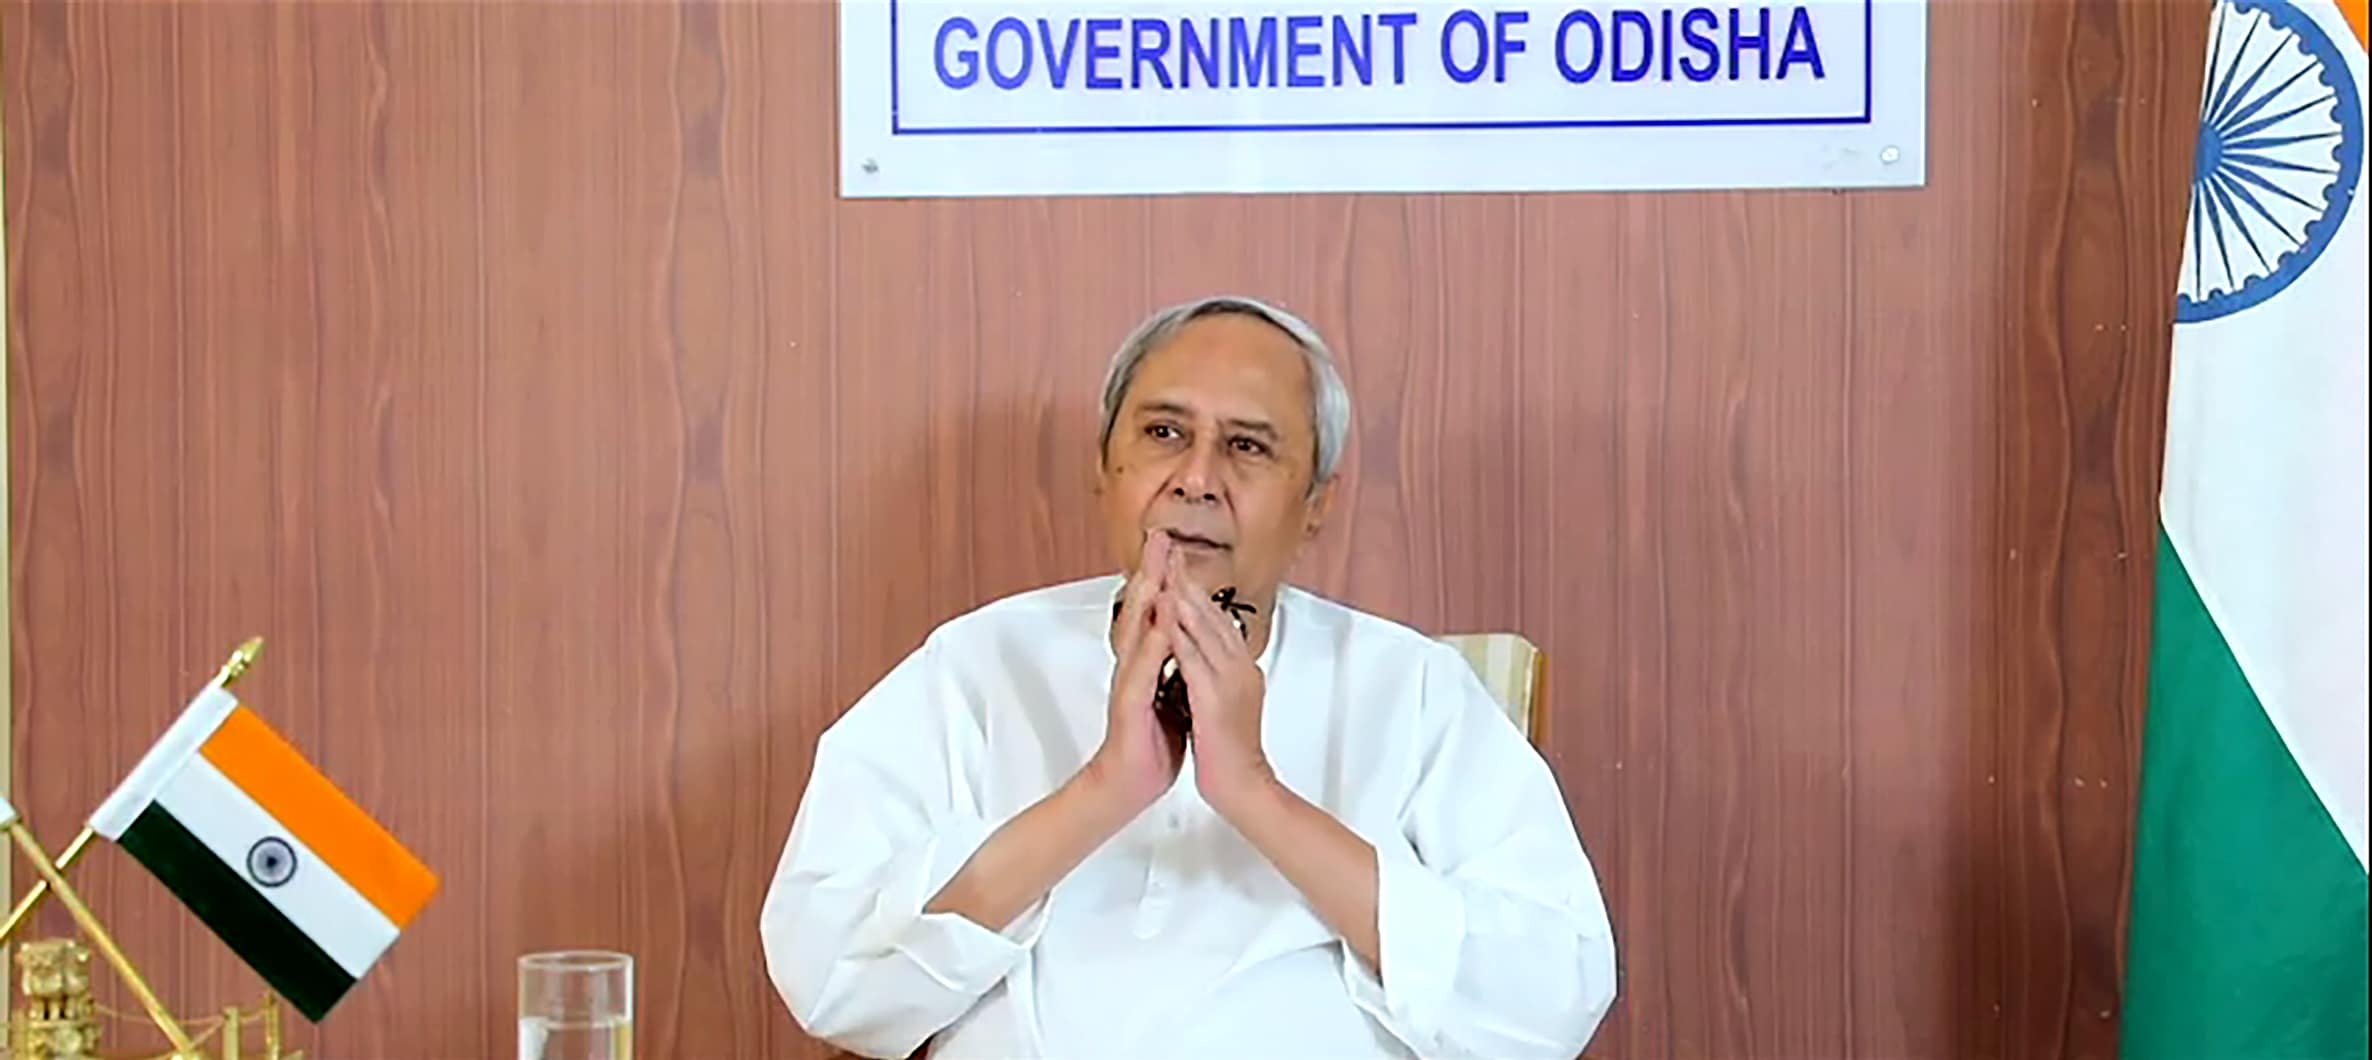 Odisha Chief Minister Naveen Patnaik inaugurating the Product Application and Development Centre, set up by Indian Oil Corporation Ltd (IOCL), via video conferencing, in Paradip.